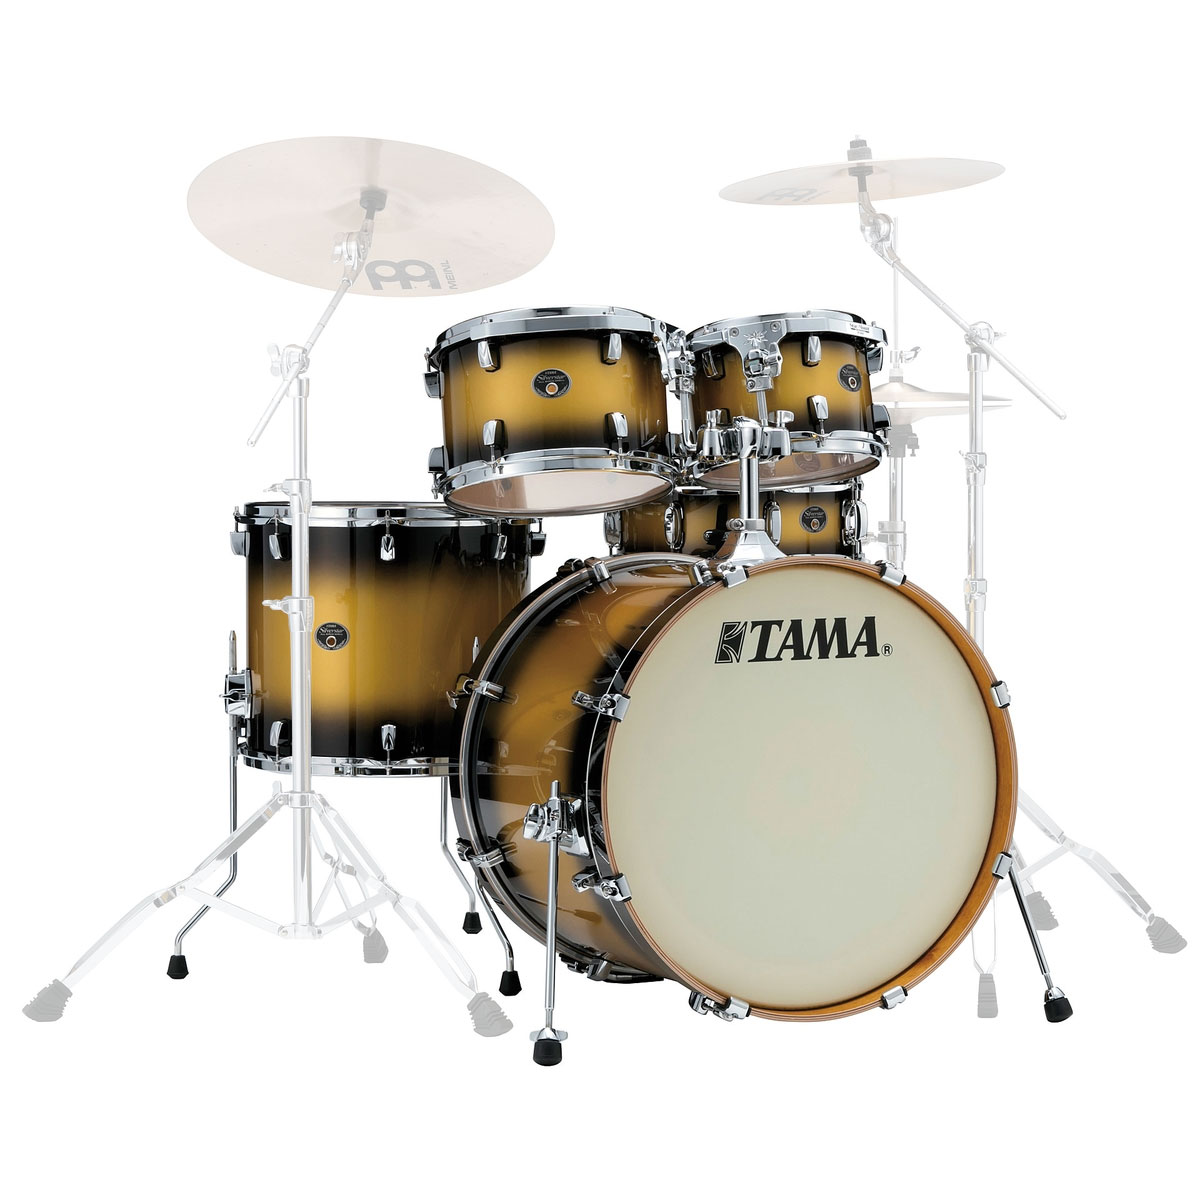 "Tama Silverstar 5-Piece Drum Set Shell Pack (22"" Bass, 10/12/16"" Toms, 14"" Snare) in Lacquer Finish"